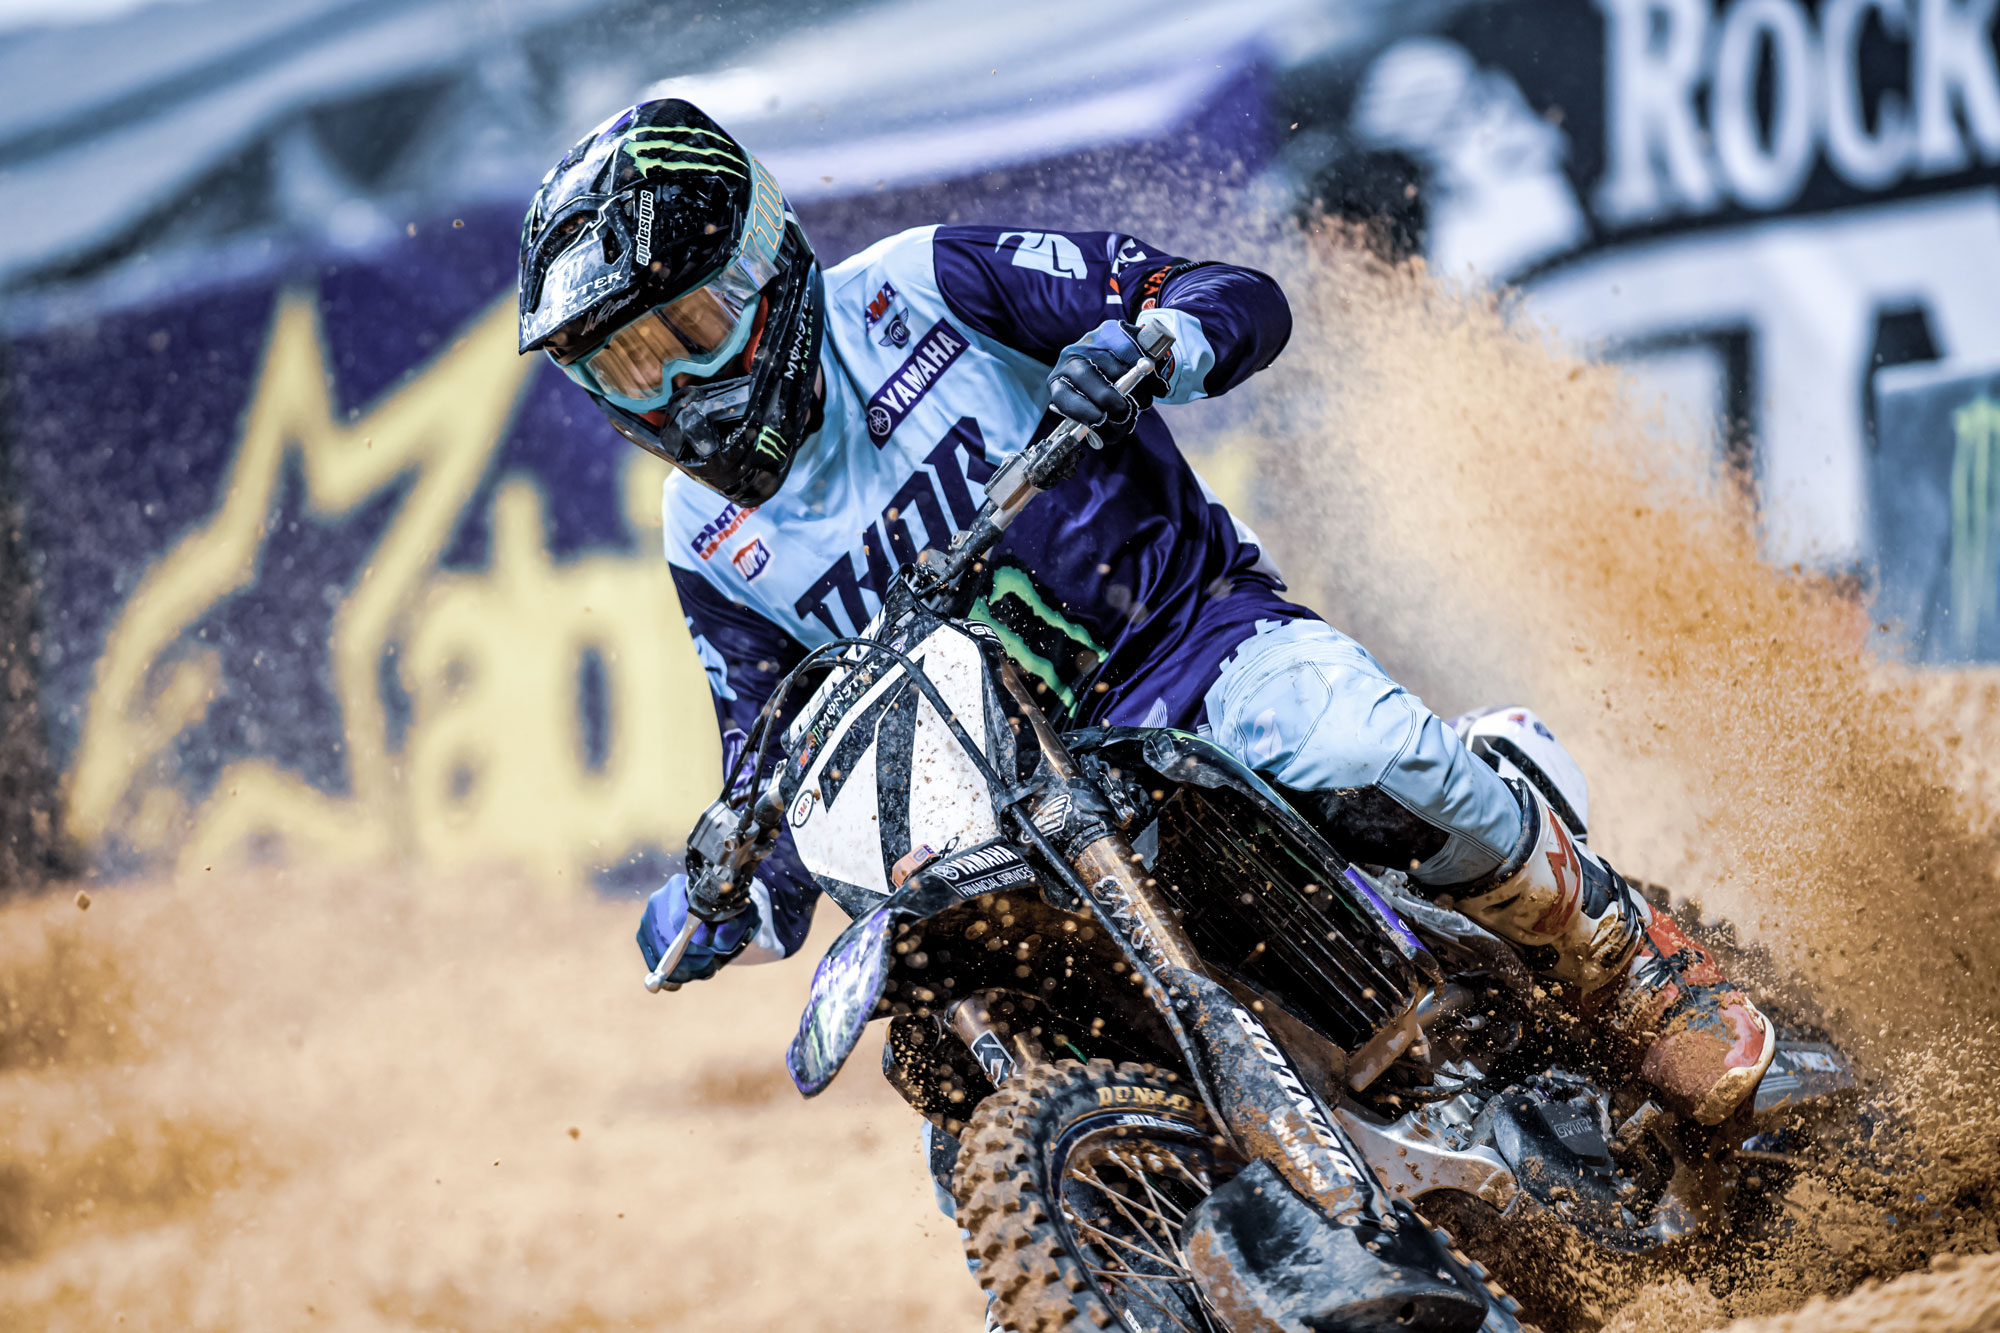 PLESSINGER_2019_ATLANTA_SX_web.jpg